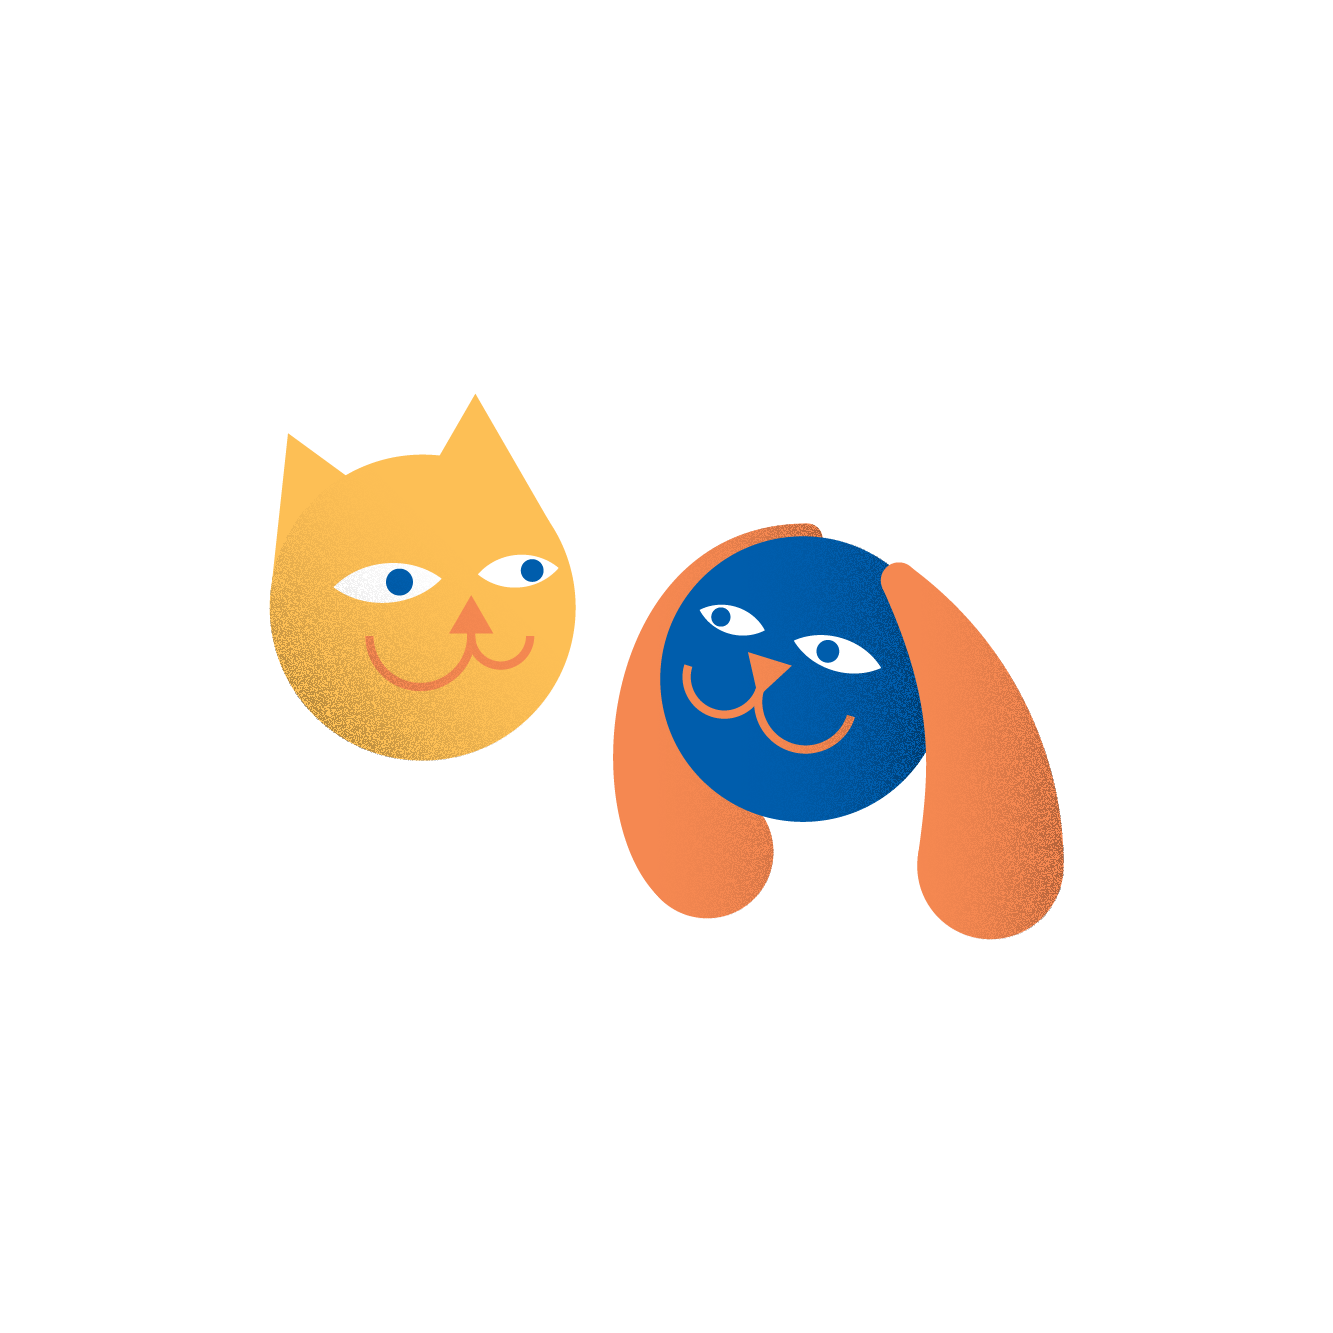 Illustration of a cat and a dog (26)